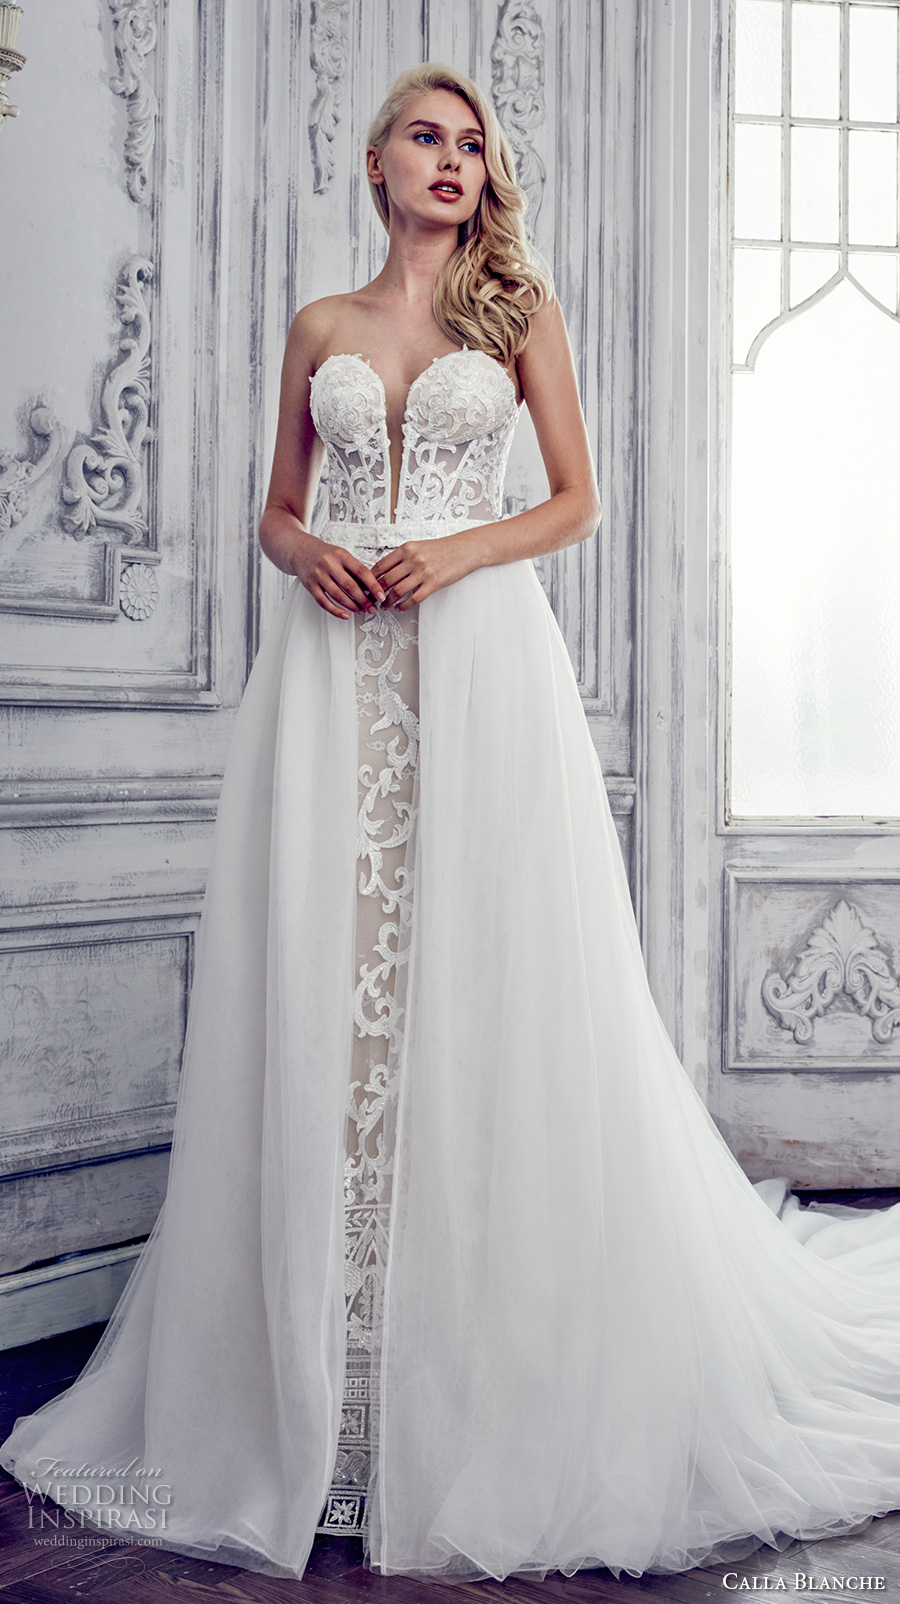 calla blanche spring 2017 bridal strapless deep plunging sweettheart neckline full embroidered glamorous sexy sheath wedding dress overskirt a line chapel train (17117) mv